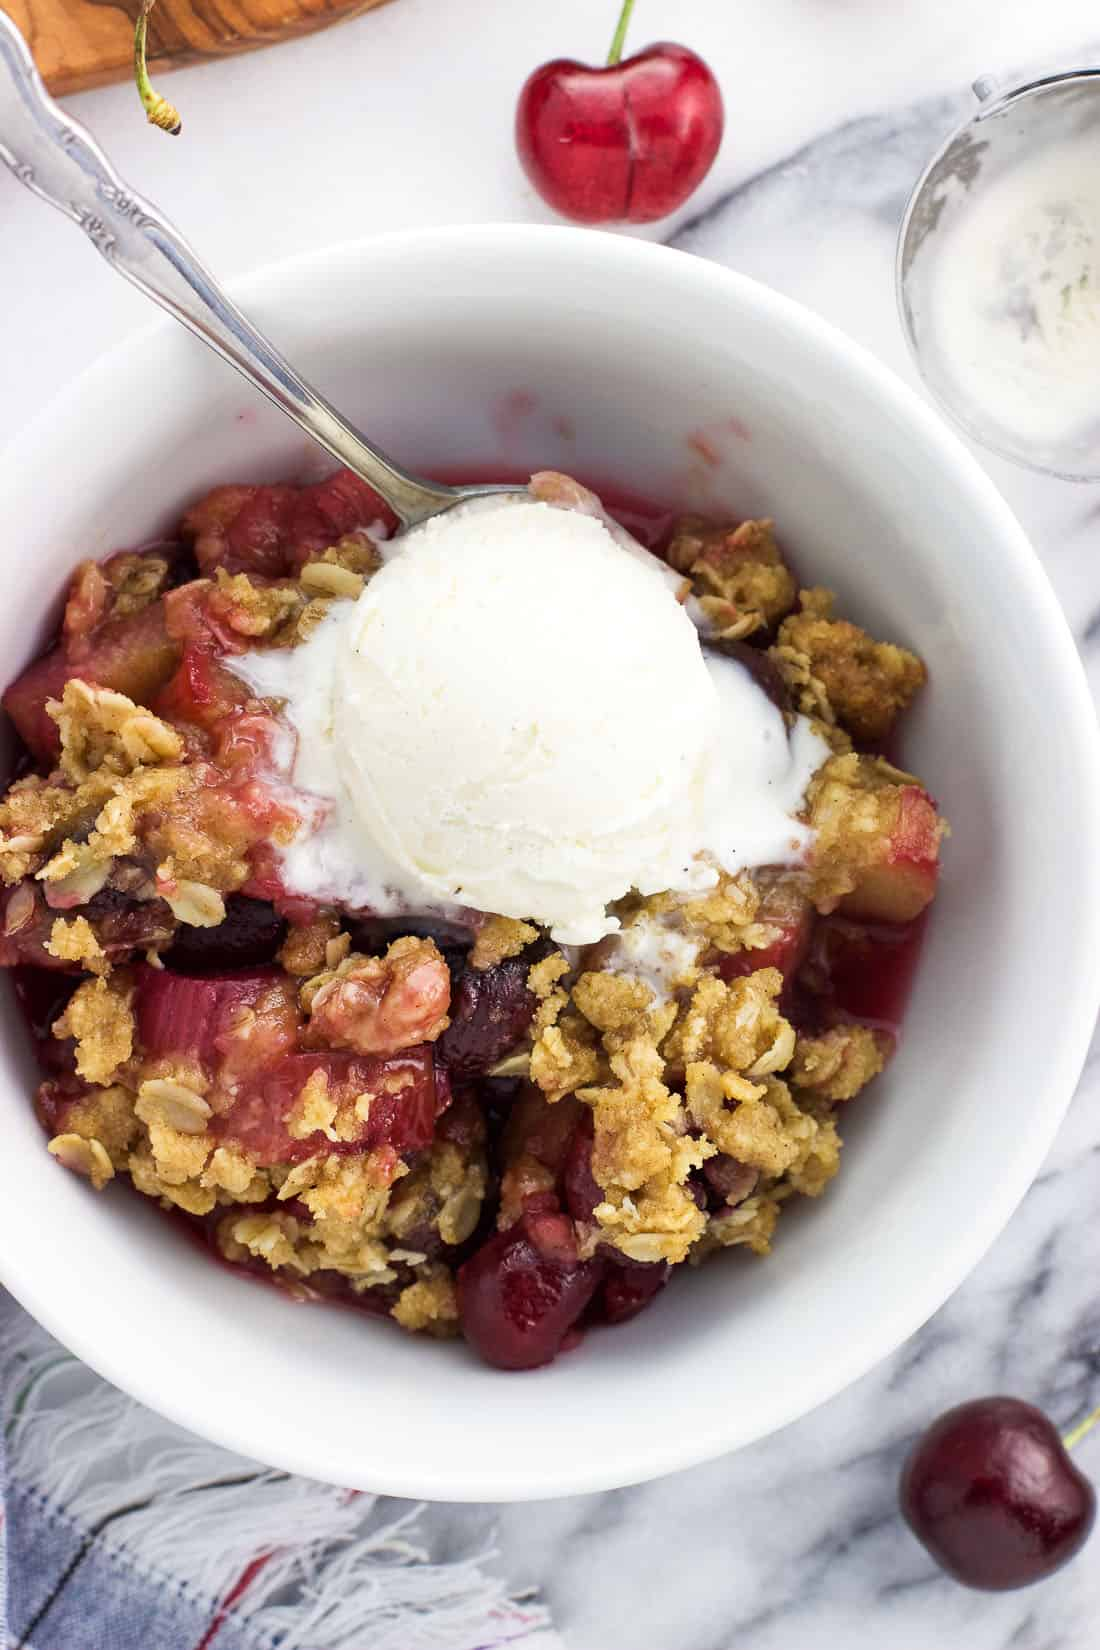 An overhead shot of a serving of fruit crisp in a bowl with a spoon and a scoop of vanilla ice cream